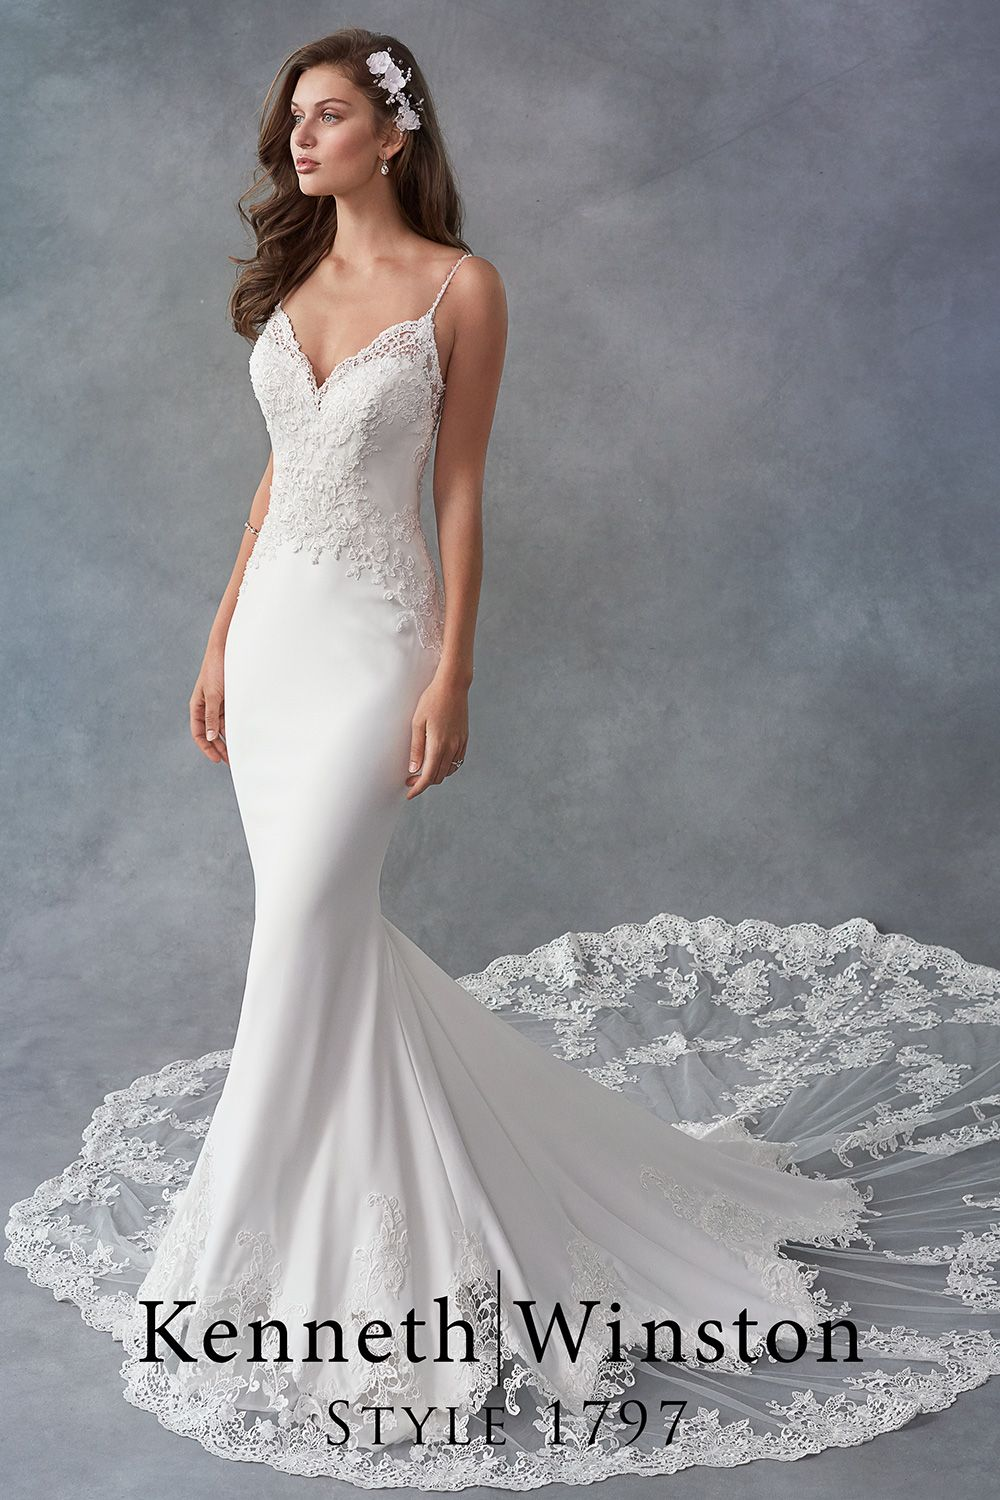 Gorgeous Lace Train On A Luxe Satin Mermaid Wedding Dress Satin Mermaid Wedding Dress Kenneth Winston Wedding Dresses Wedding Dresses [ 1500 x 1000 Pixel ]